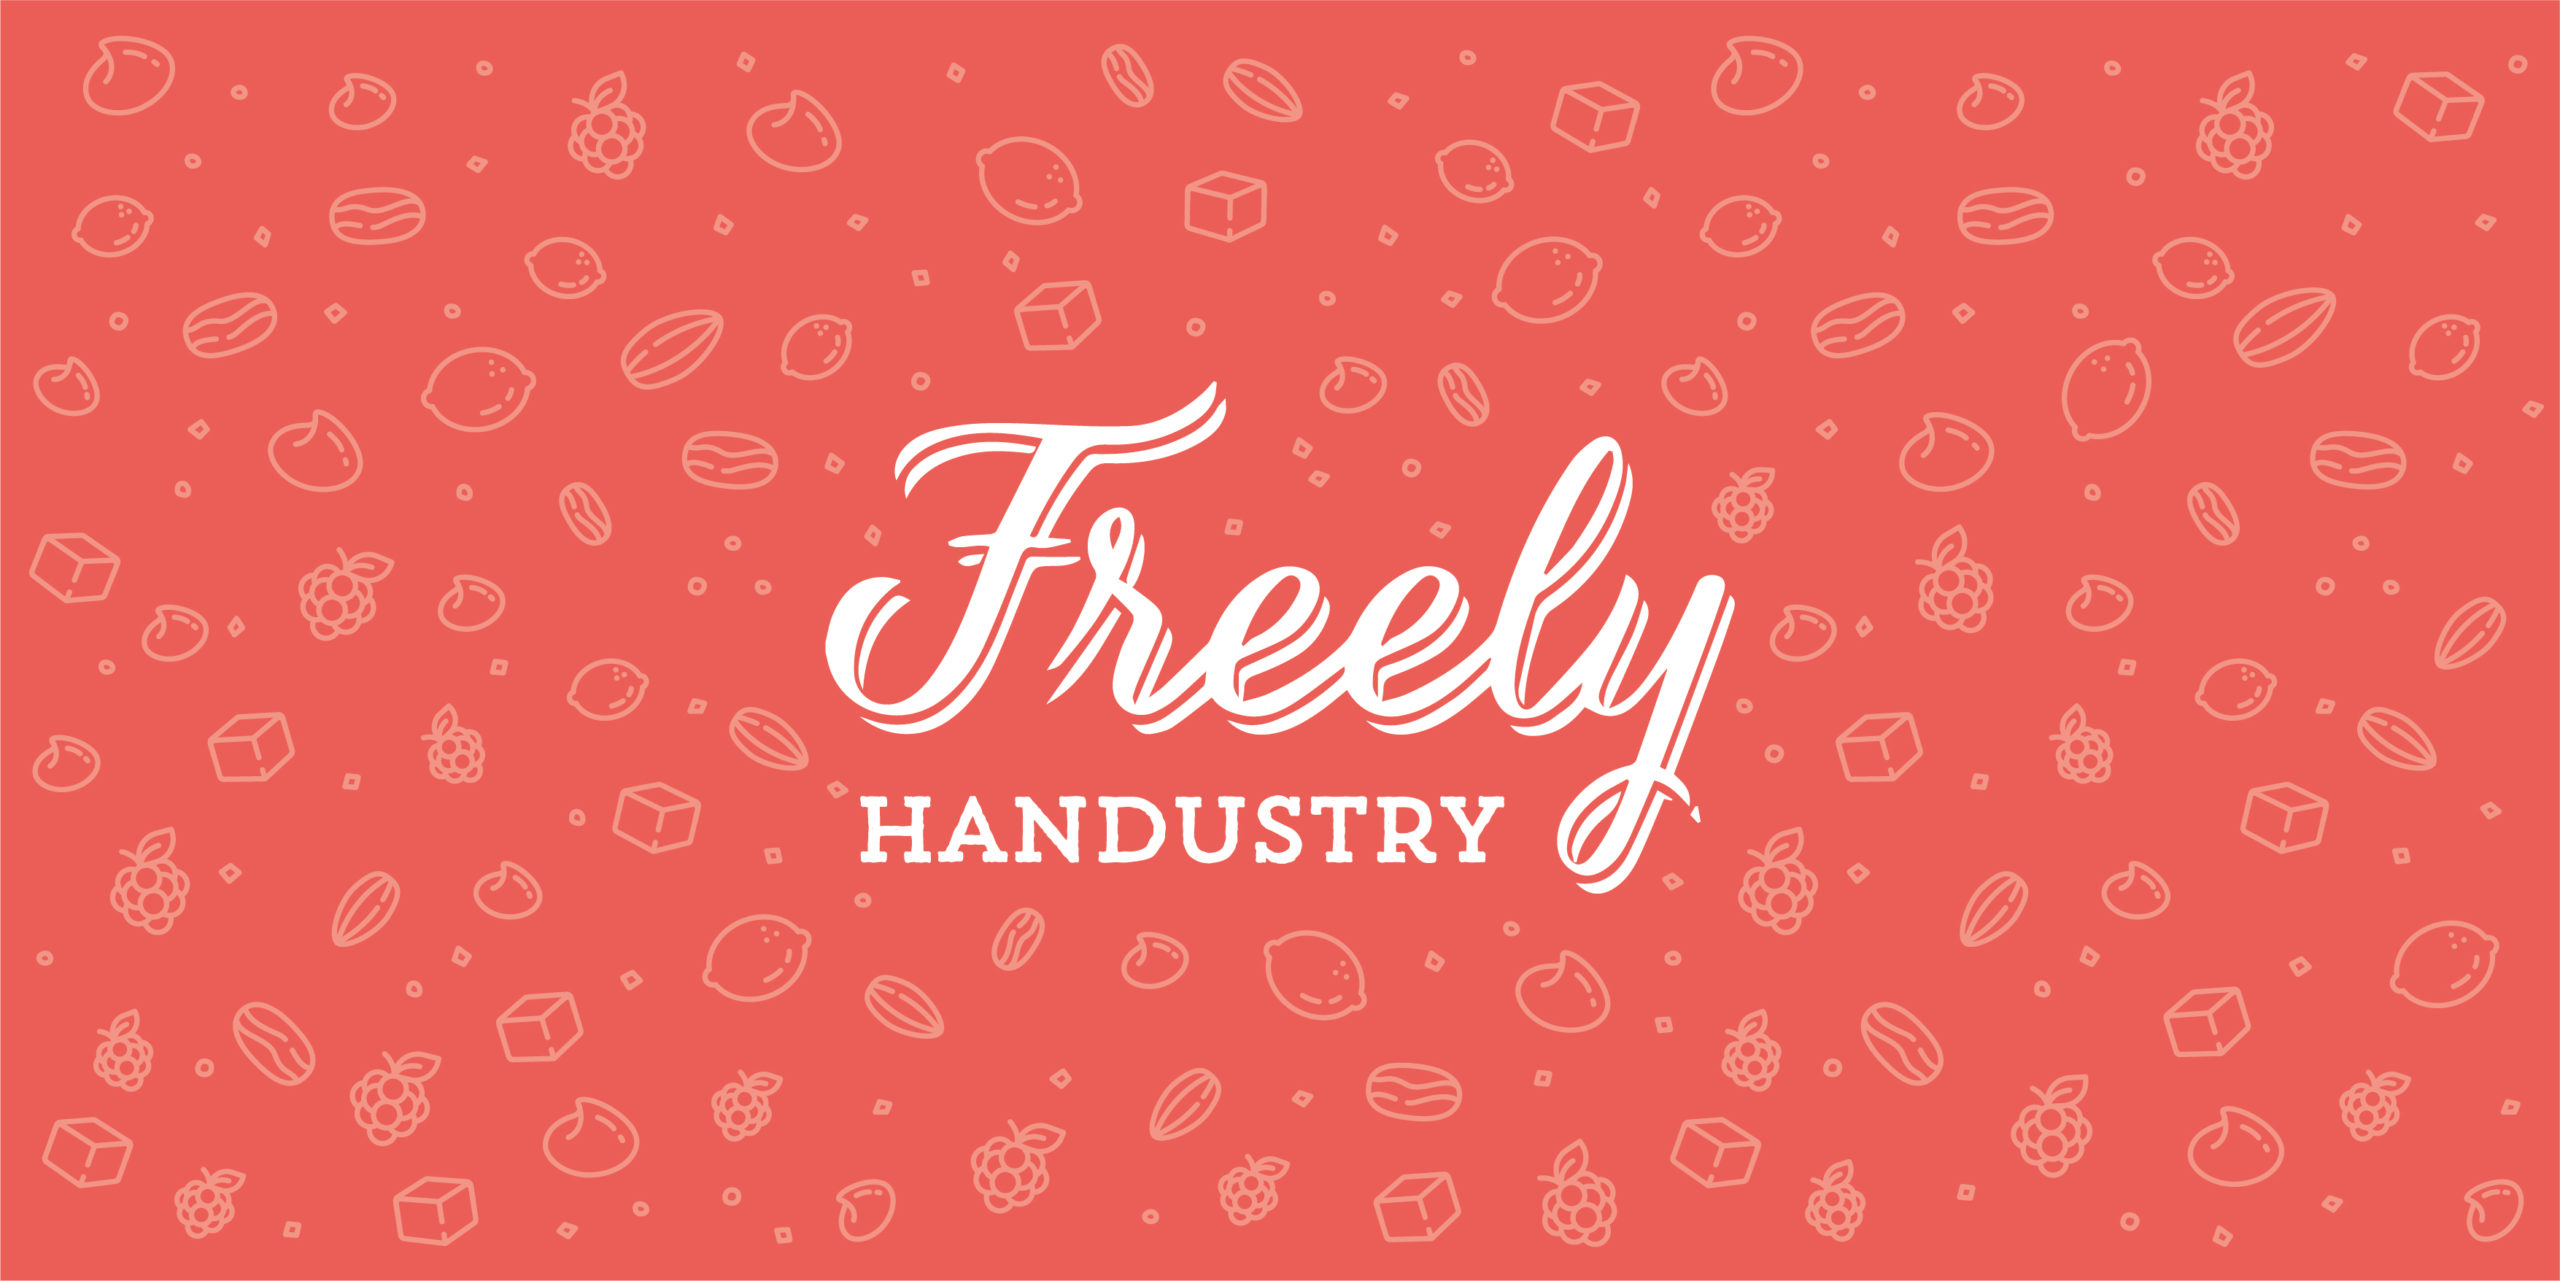 Freely Handustry Foods Branding Toast Food